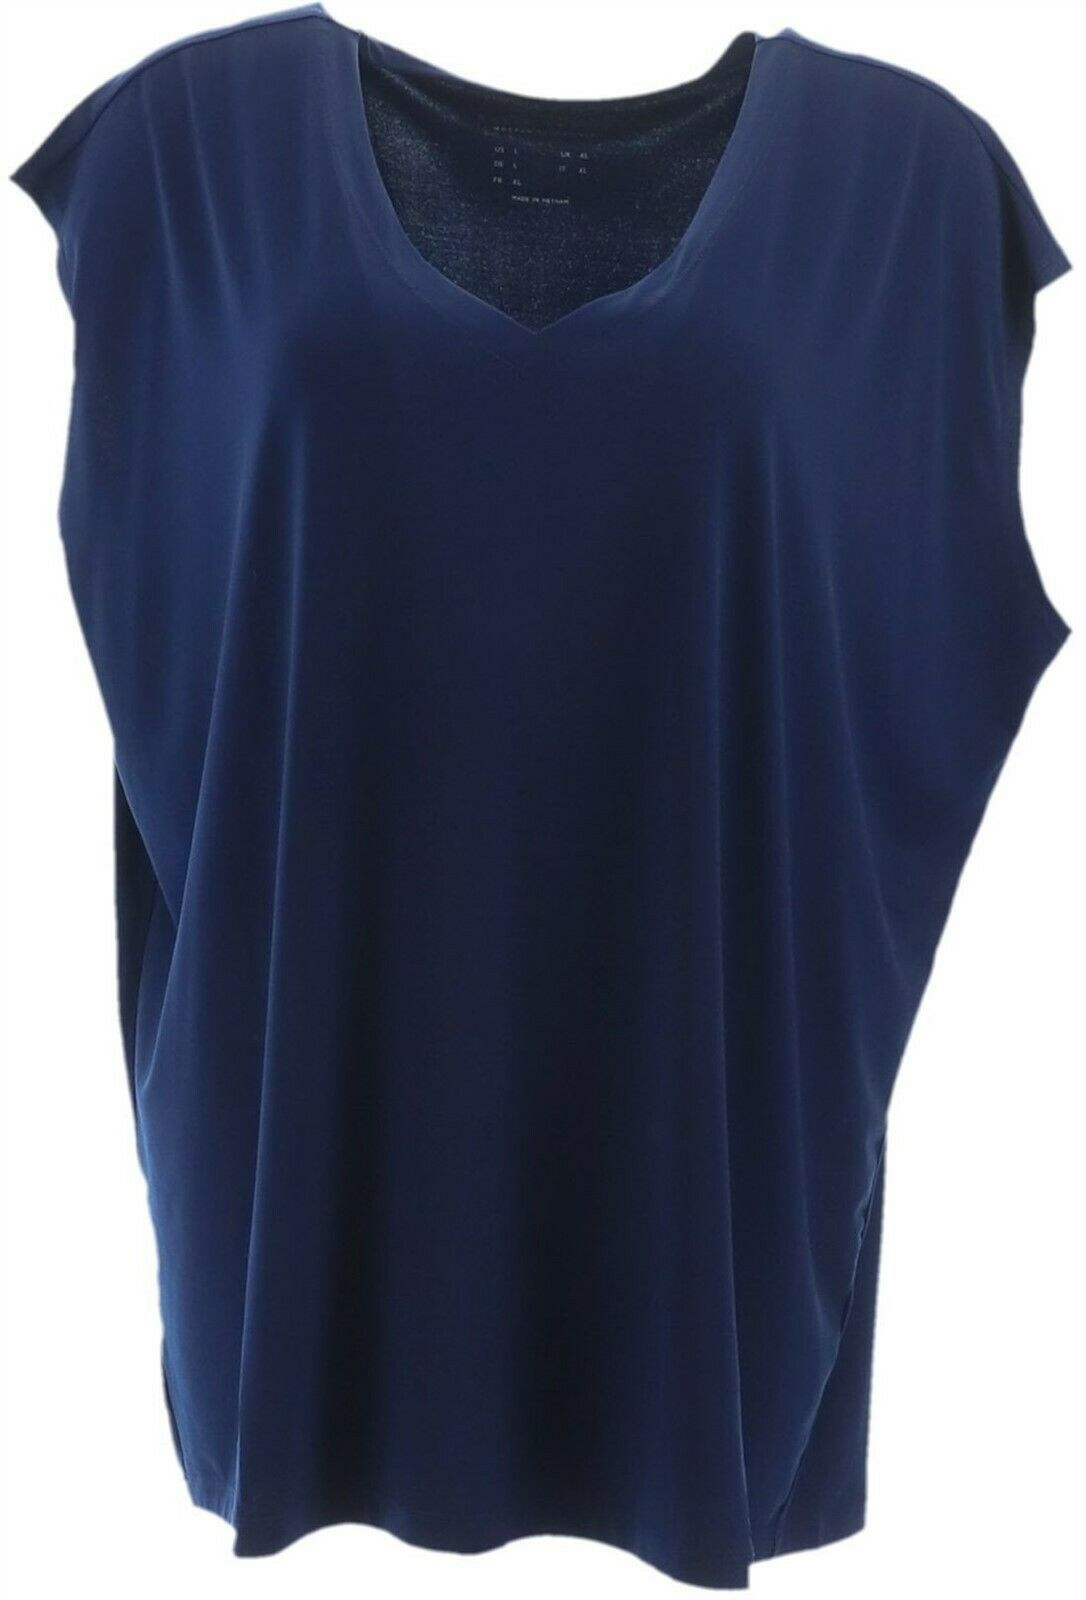 Primary image for Susan Graver Modern Essentials Liquid Knit V-Neck Top Sapphire 2X NEW A352202